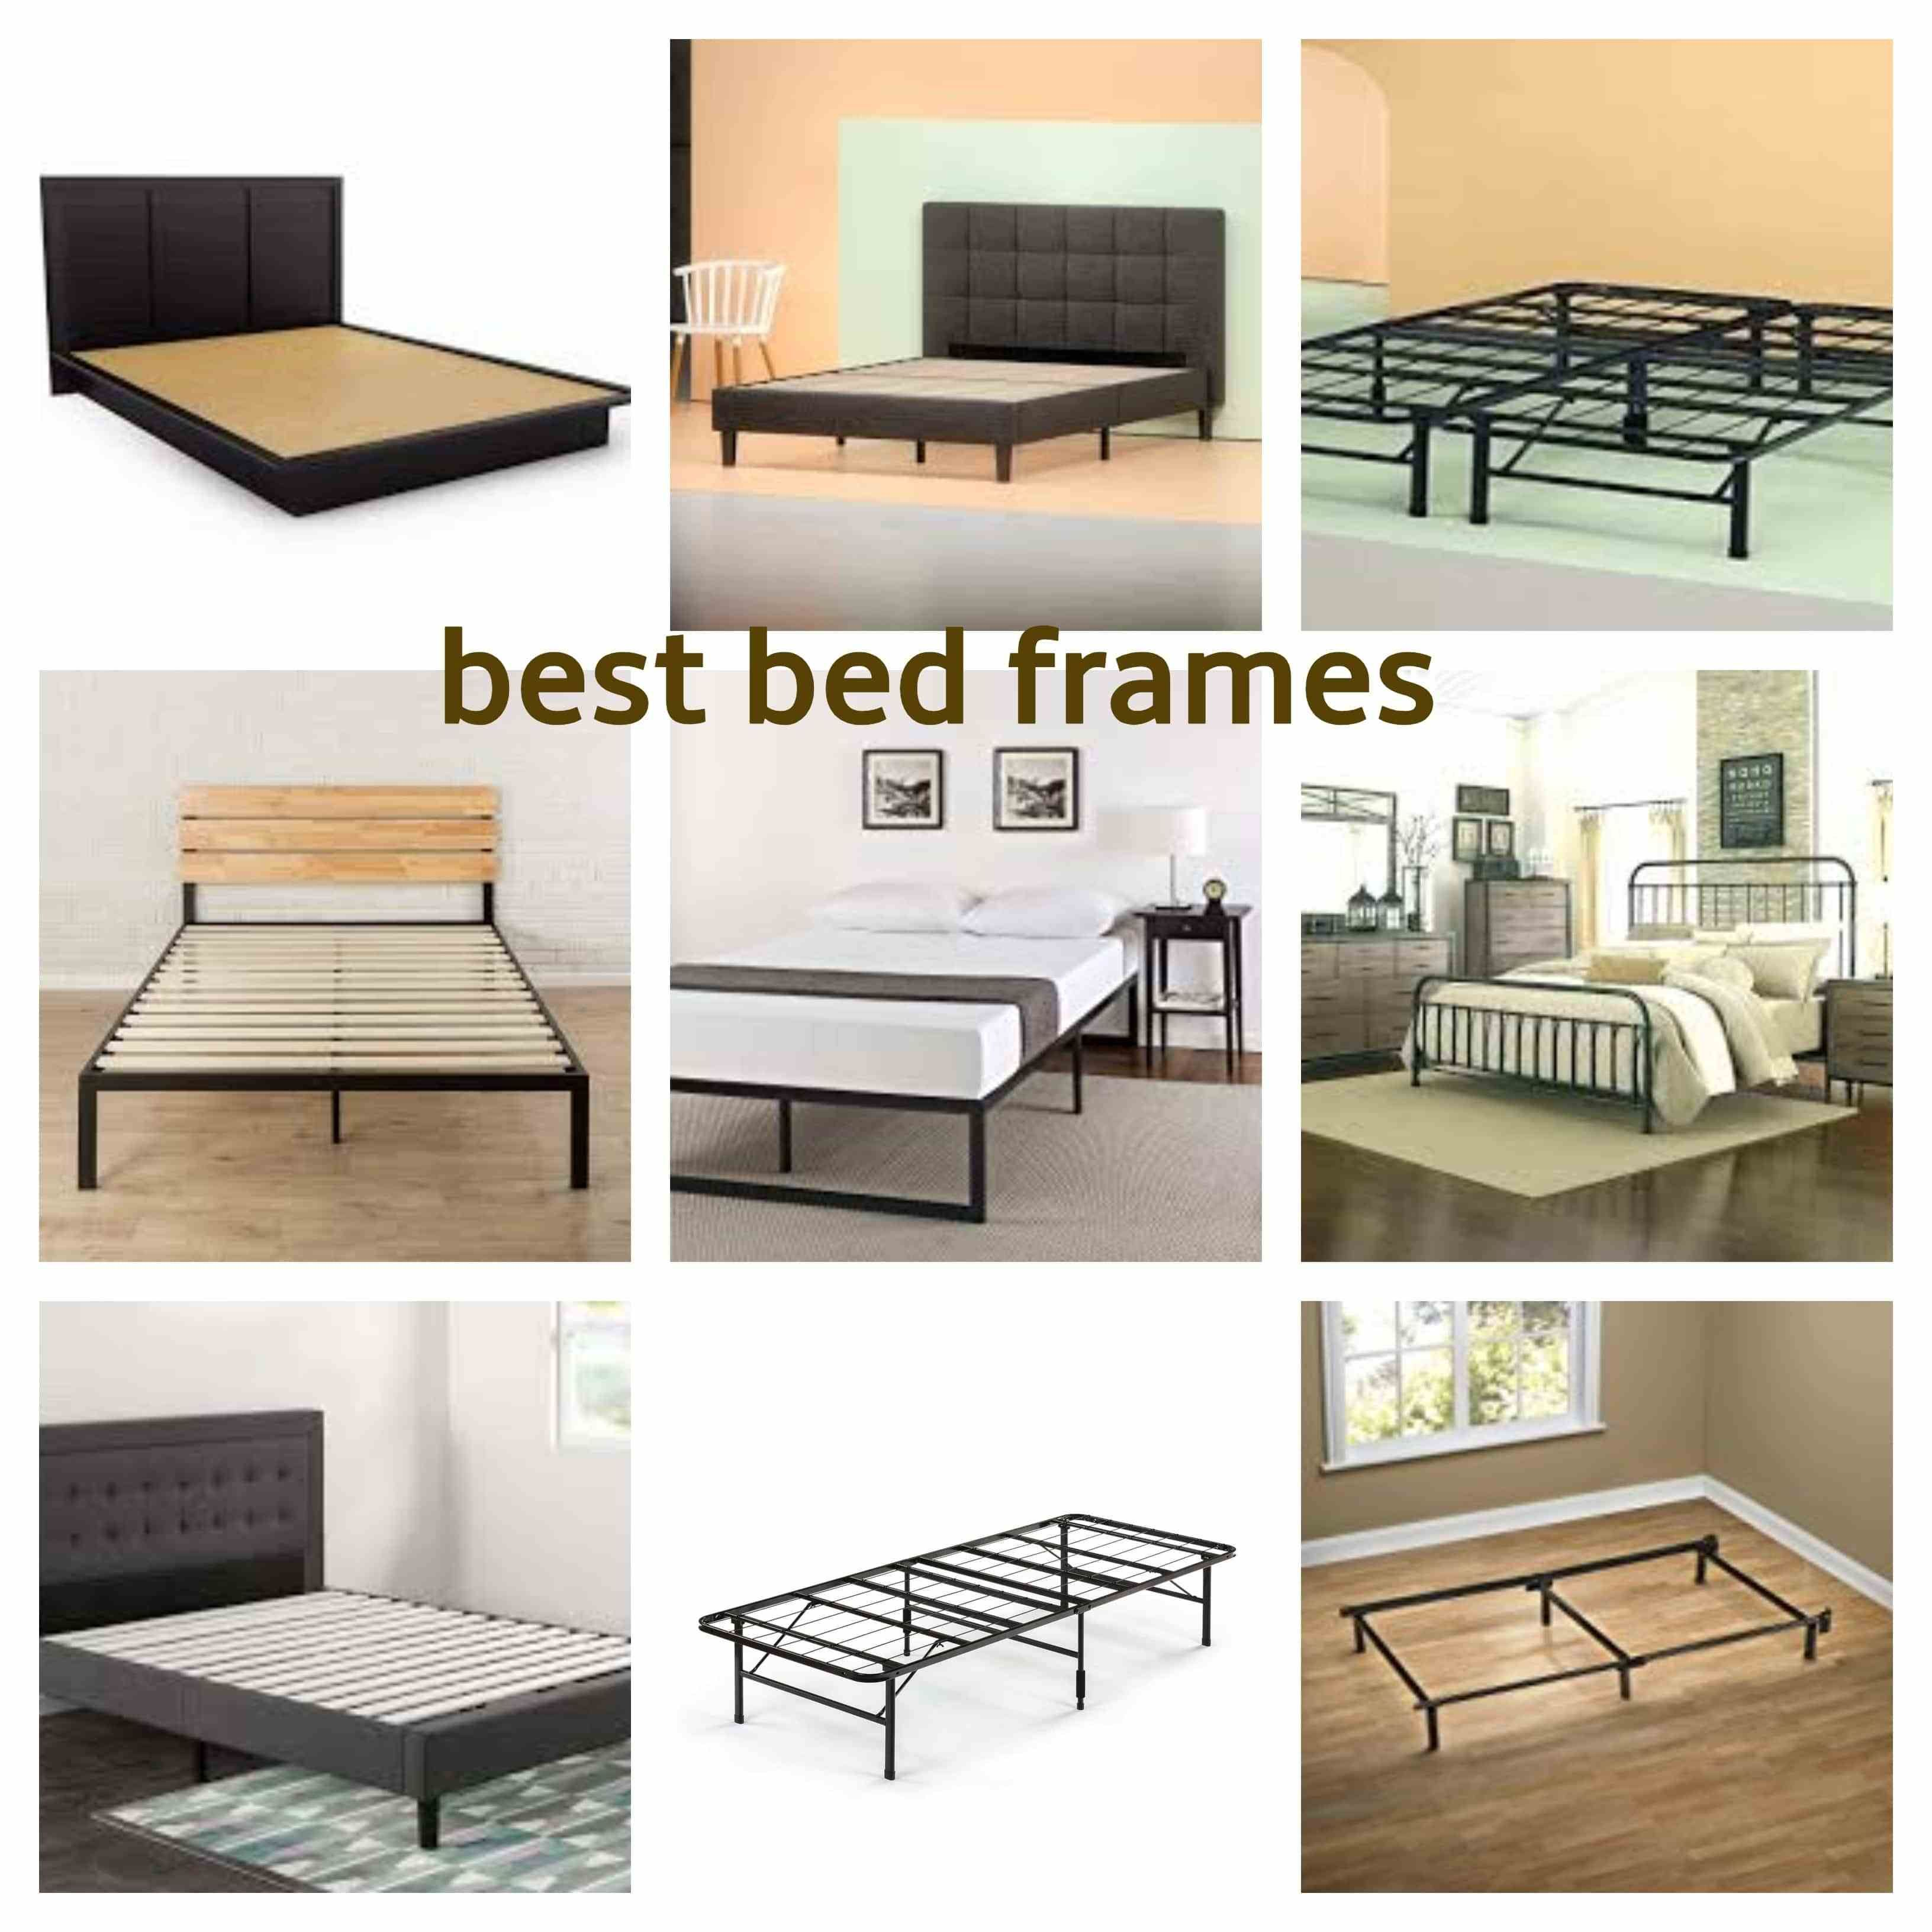 Today we are going to share the best bed frames for you in